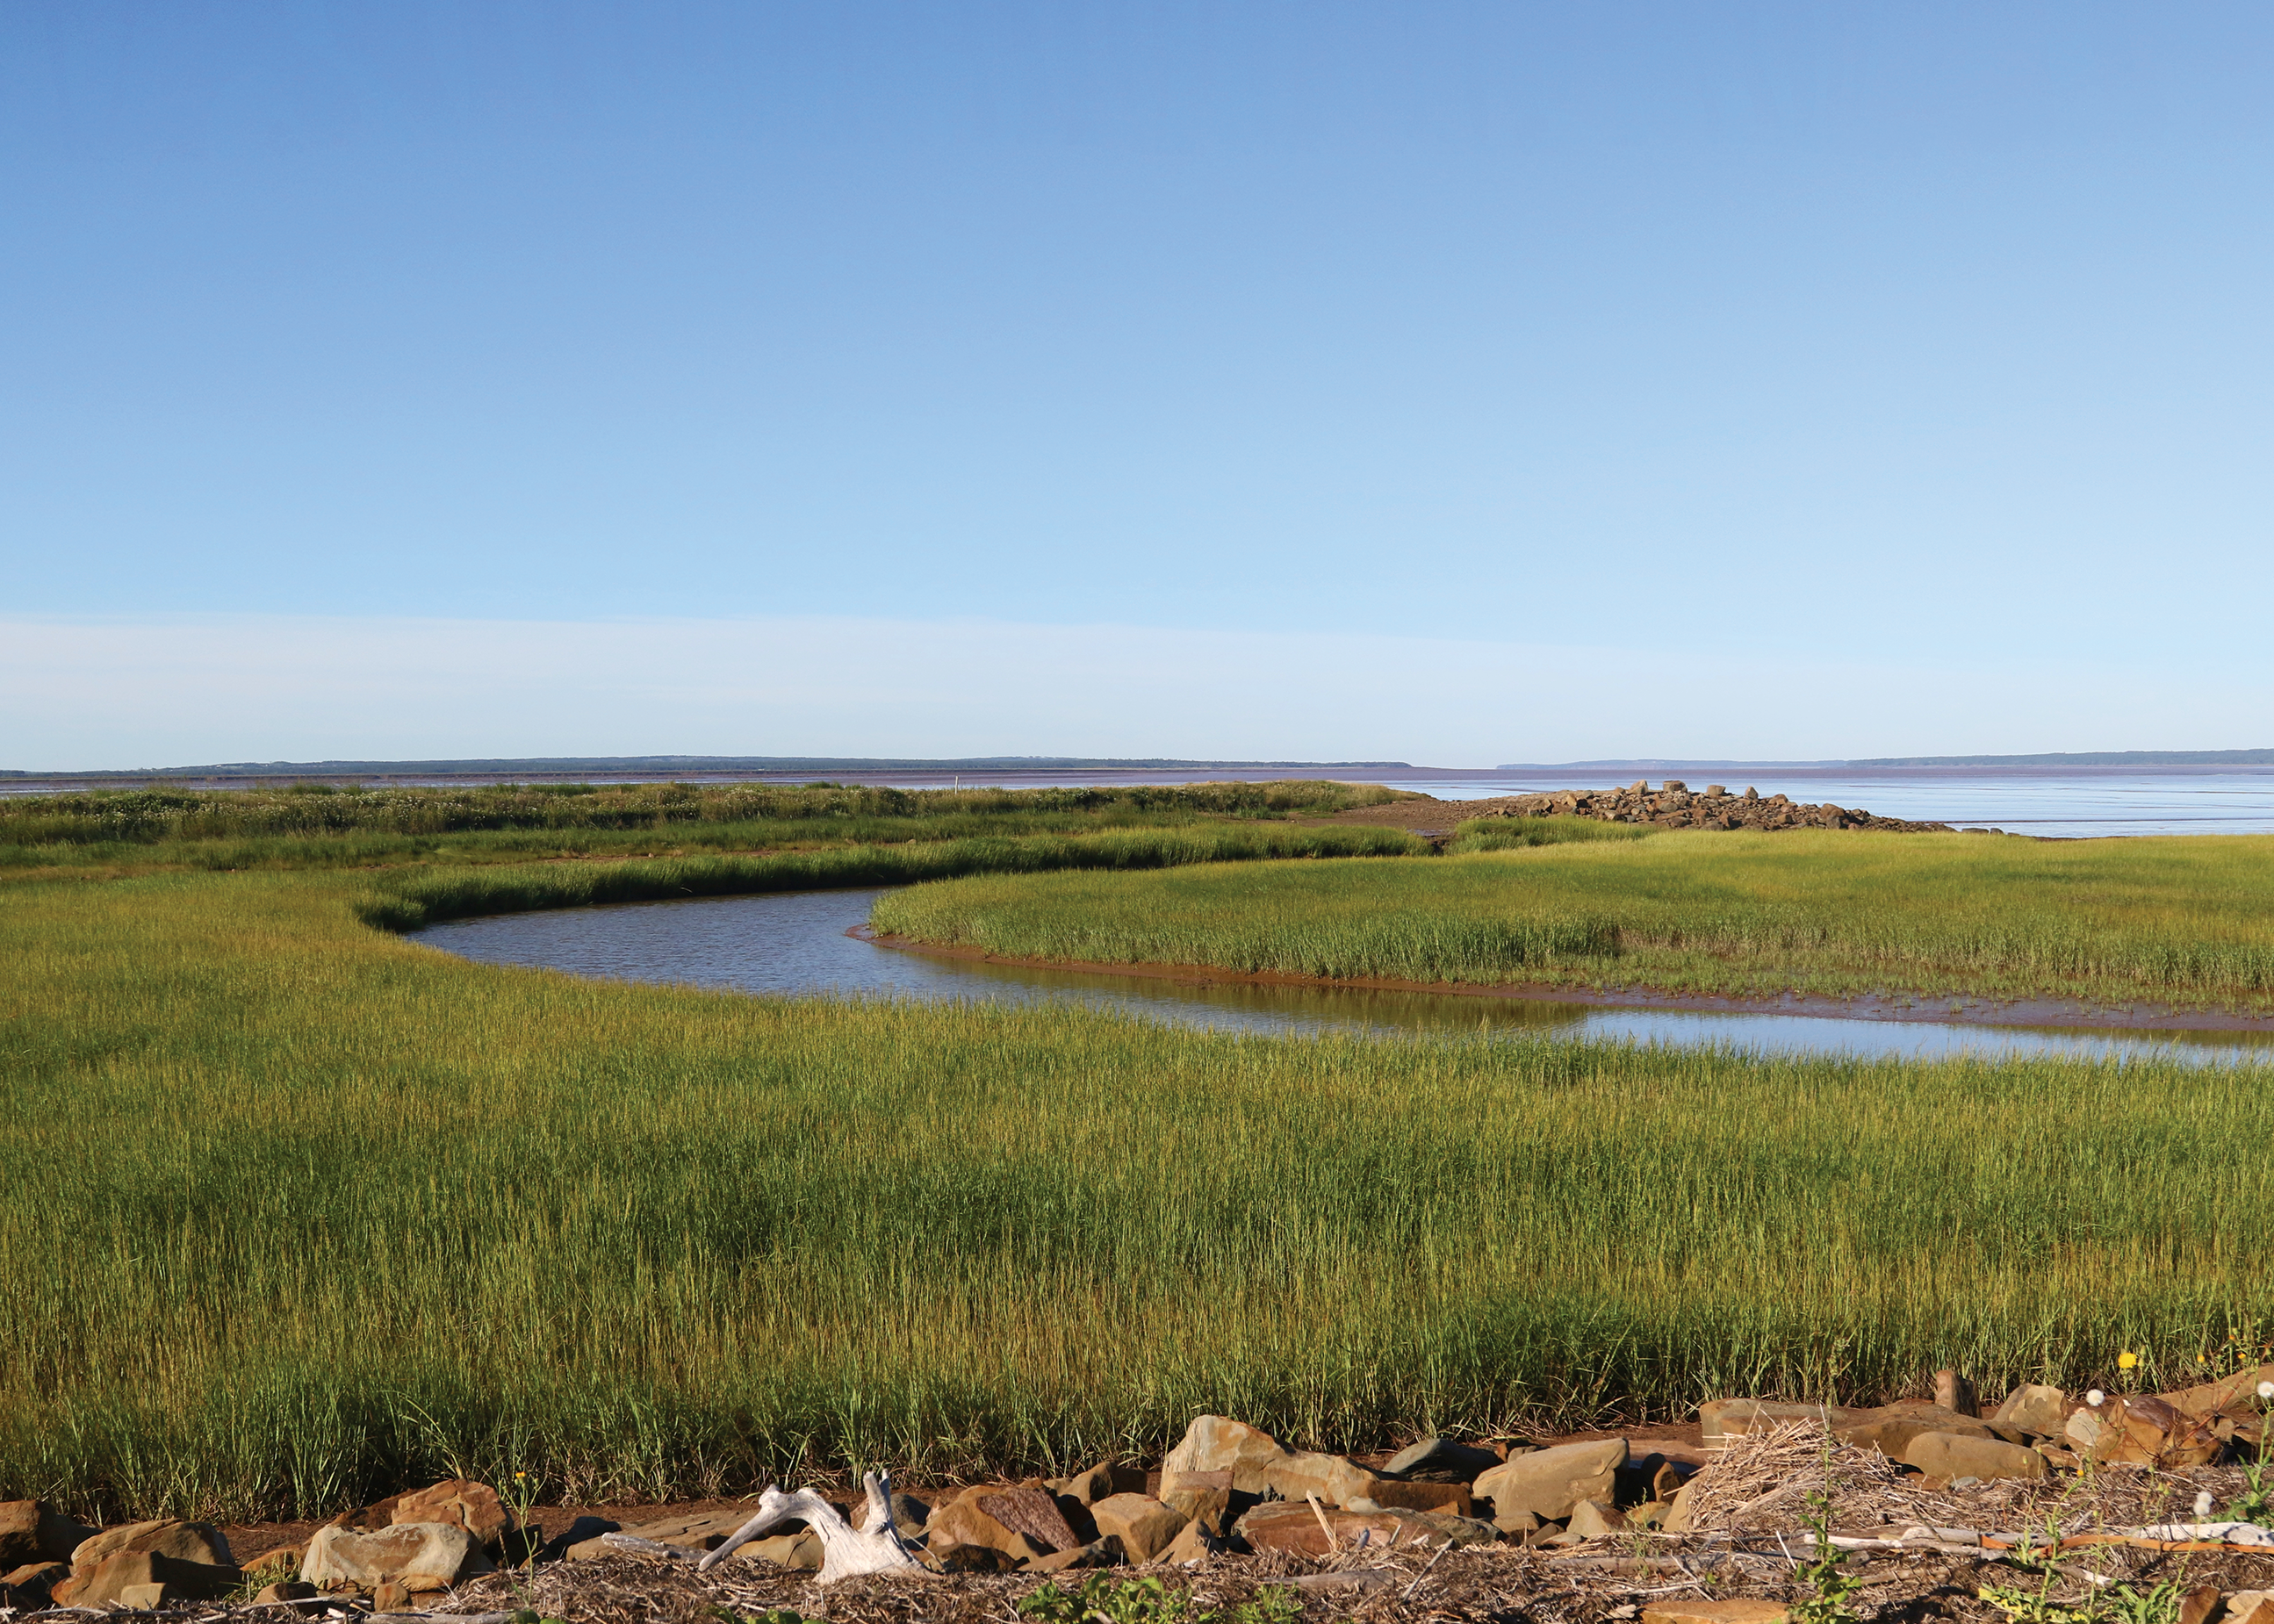 <p>Salt marshes, like this one in Nova Scotia, are a nature-based solution that can reduce coastal flooding and protect communities. Photo credit to Trish Hartmann/Flickr</p>